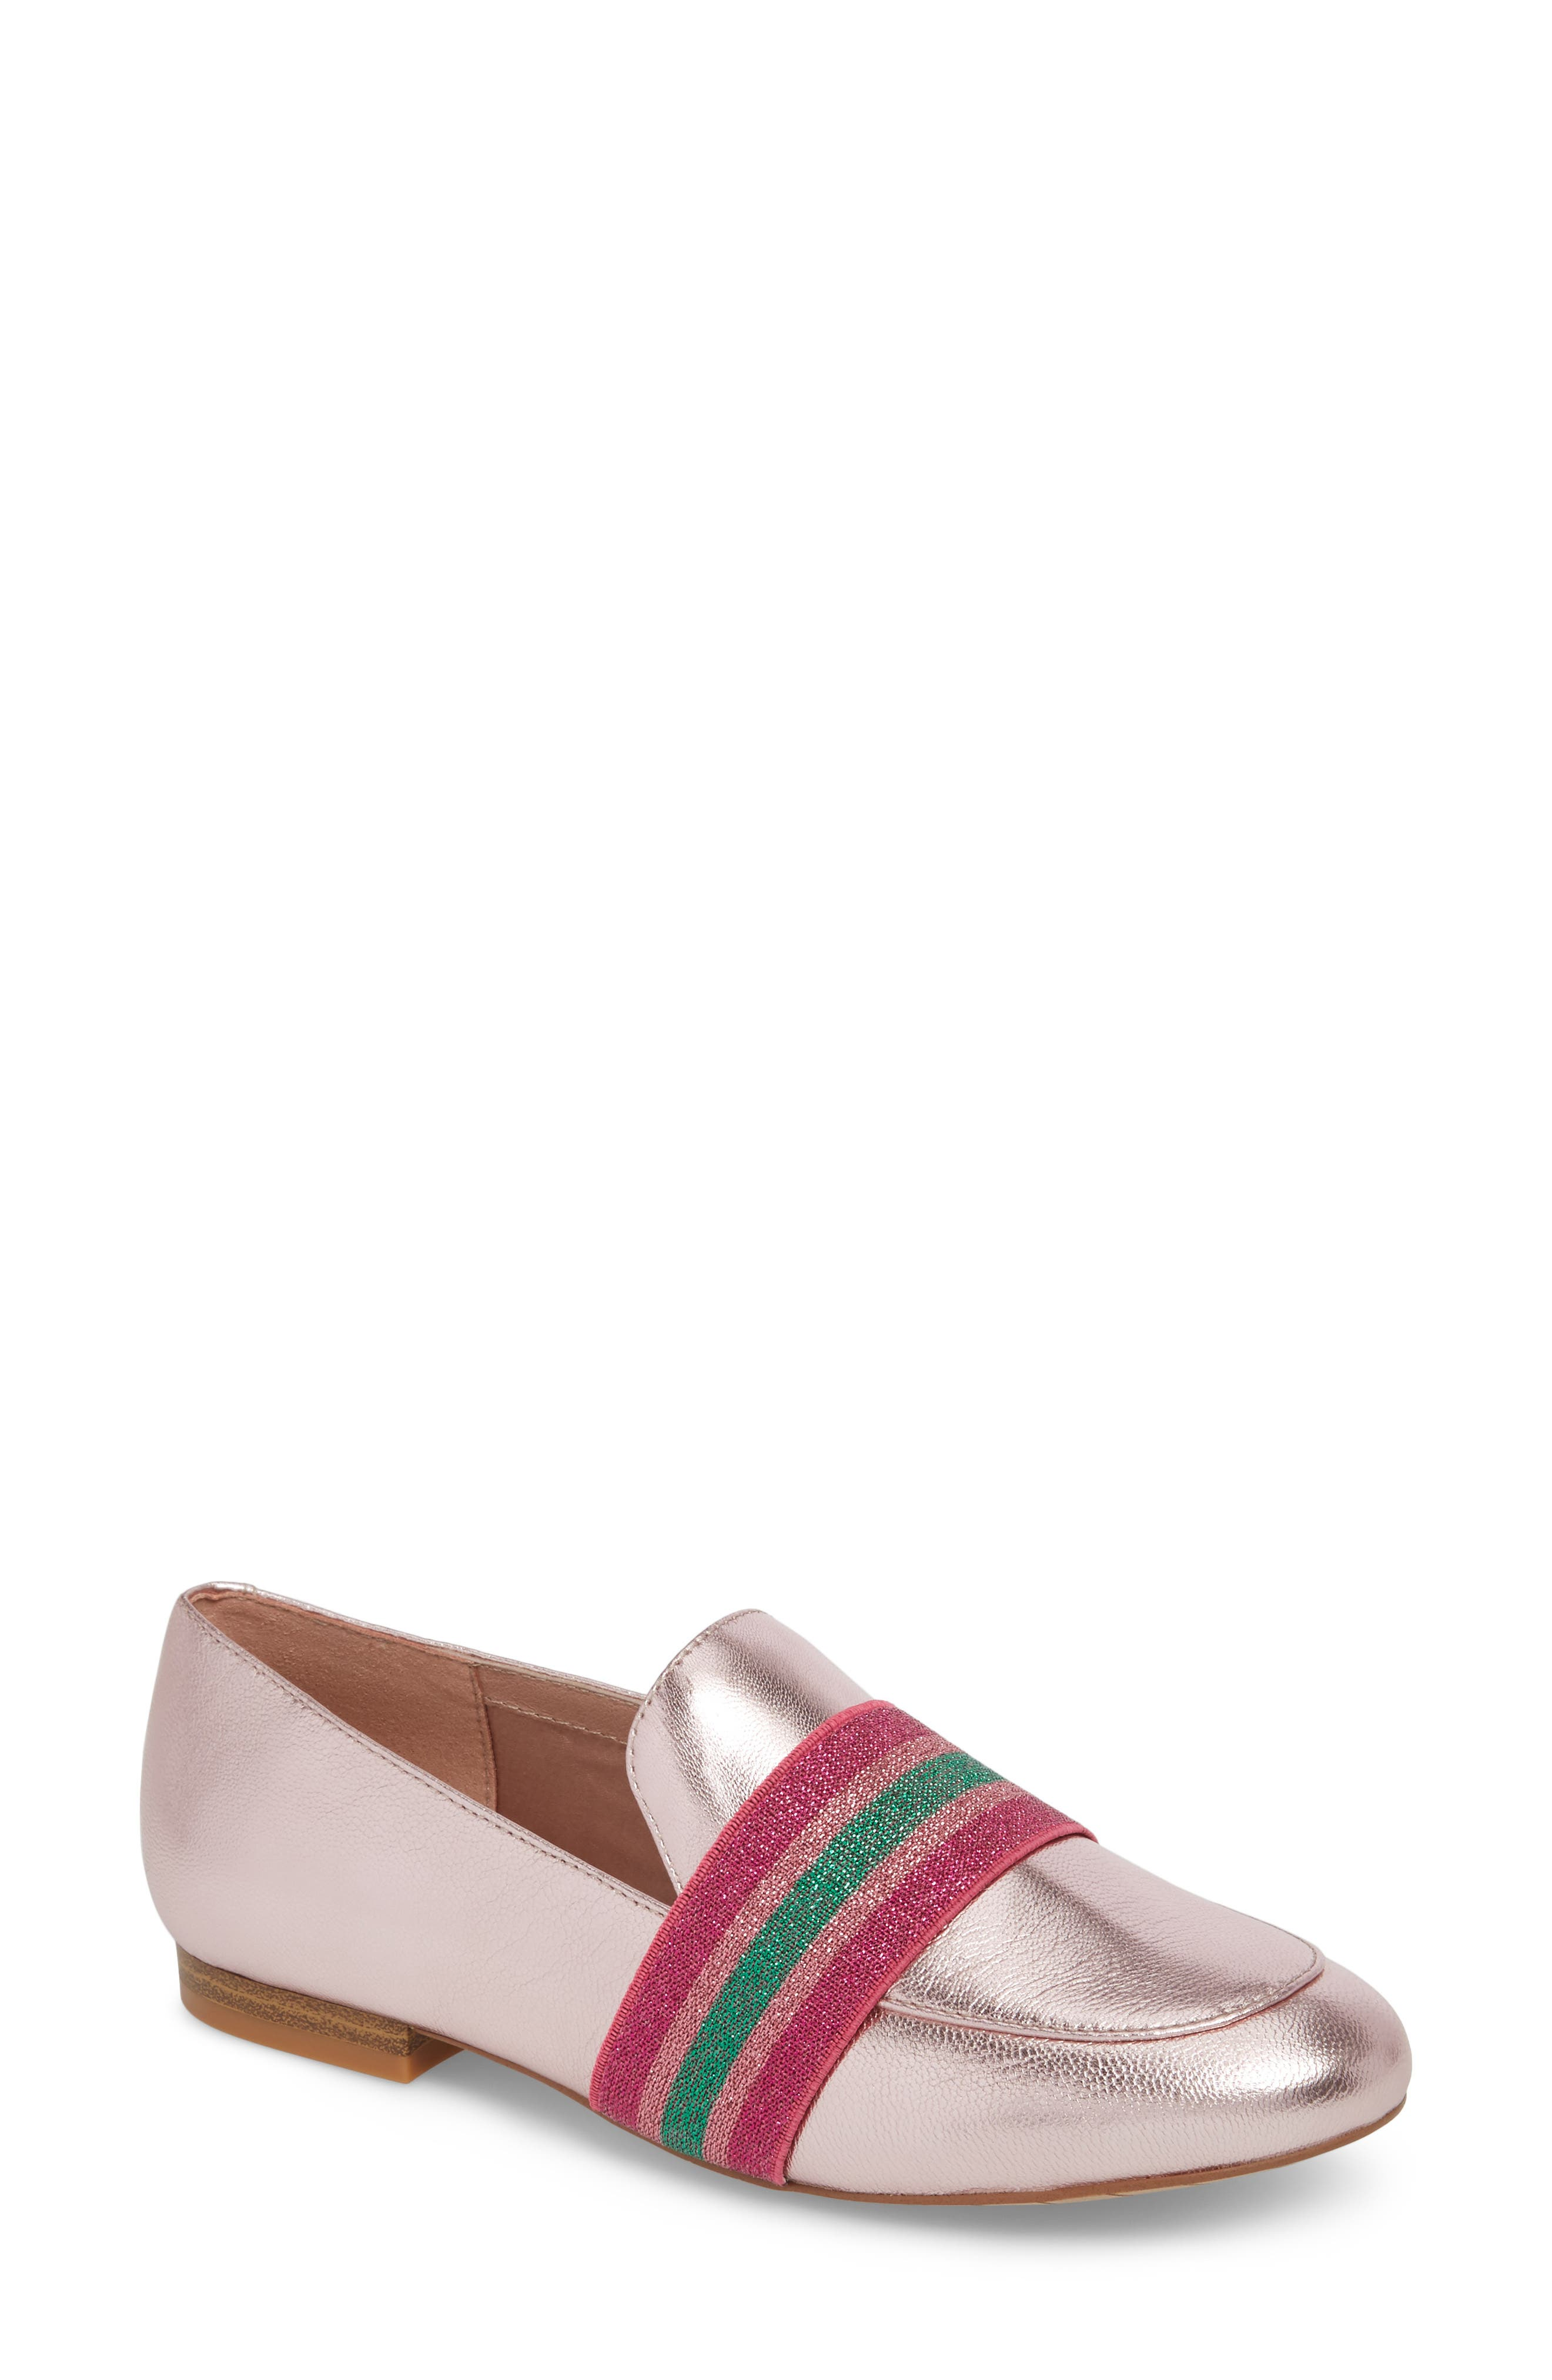 Walden Loafer,                             Main thumbnail 1, color,                             Pink Metallic Leather